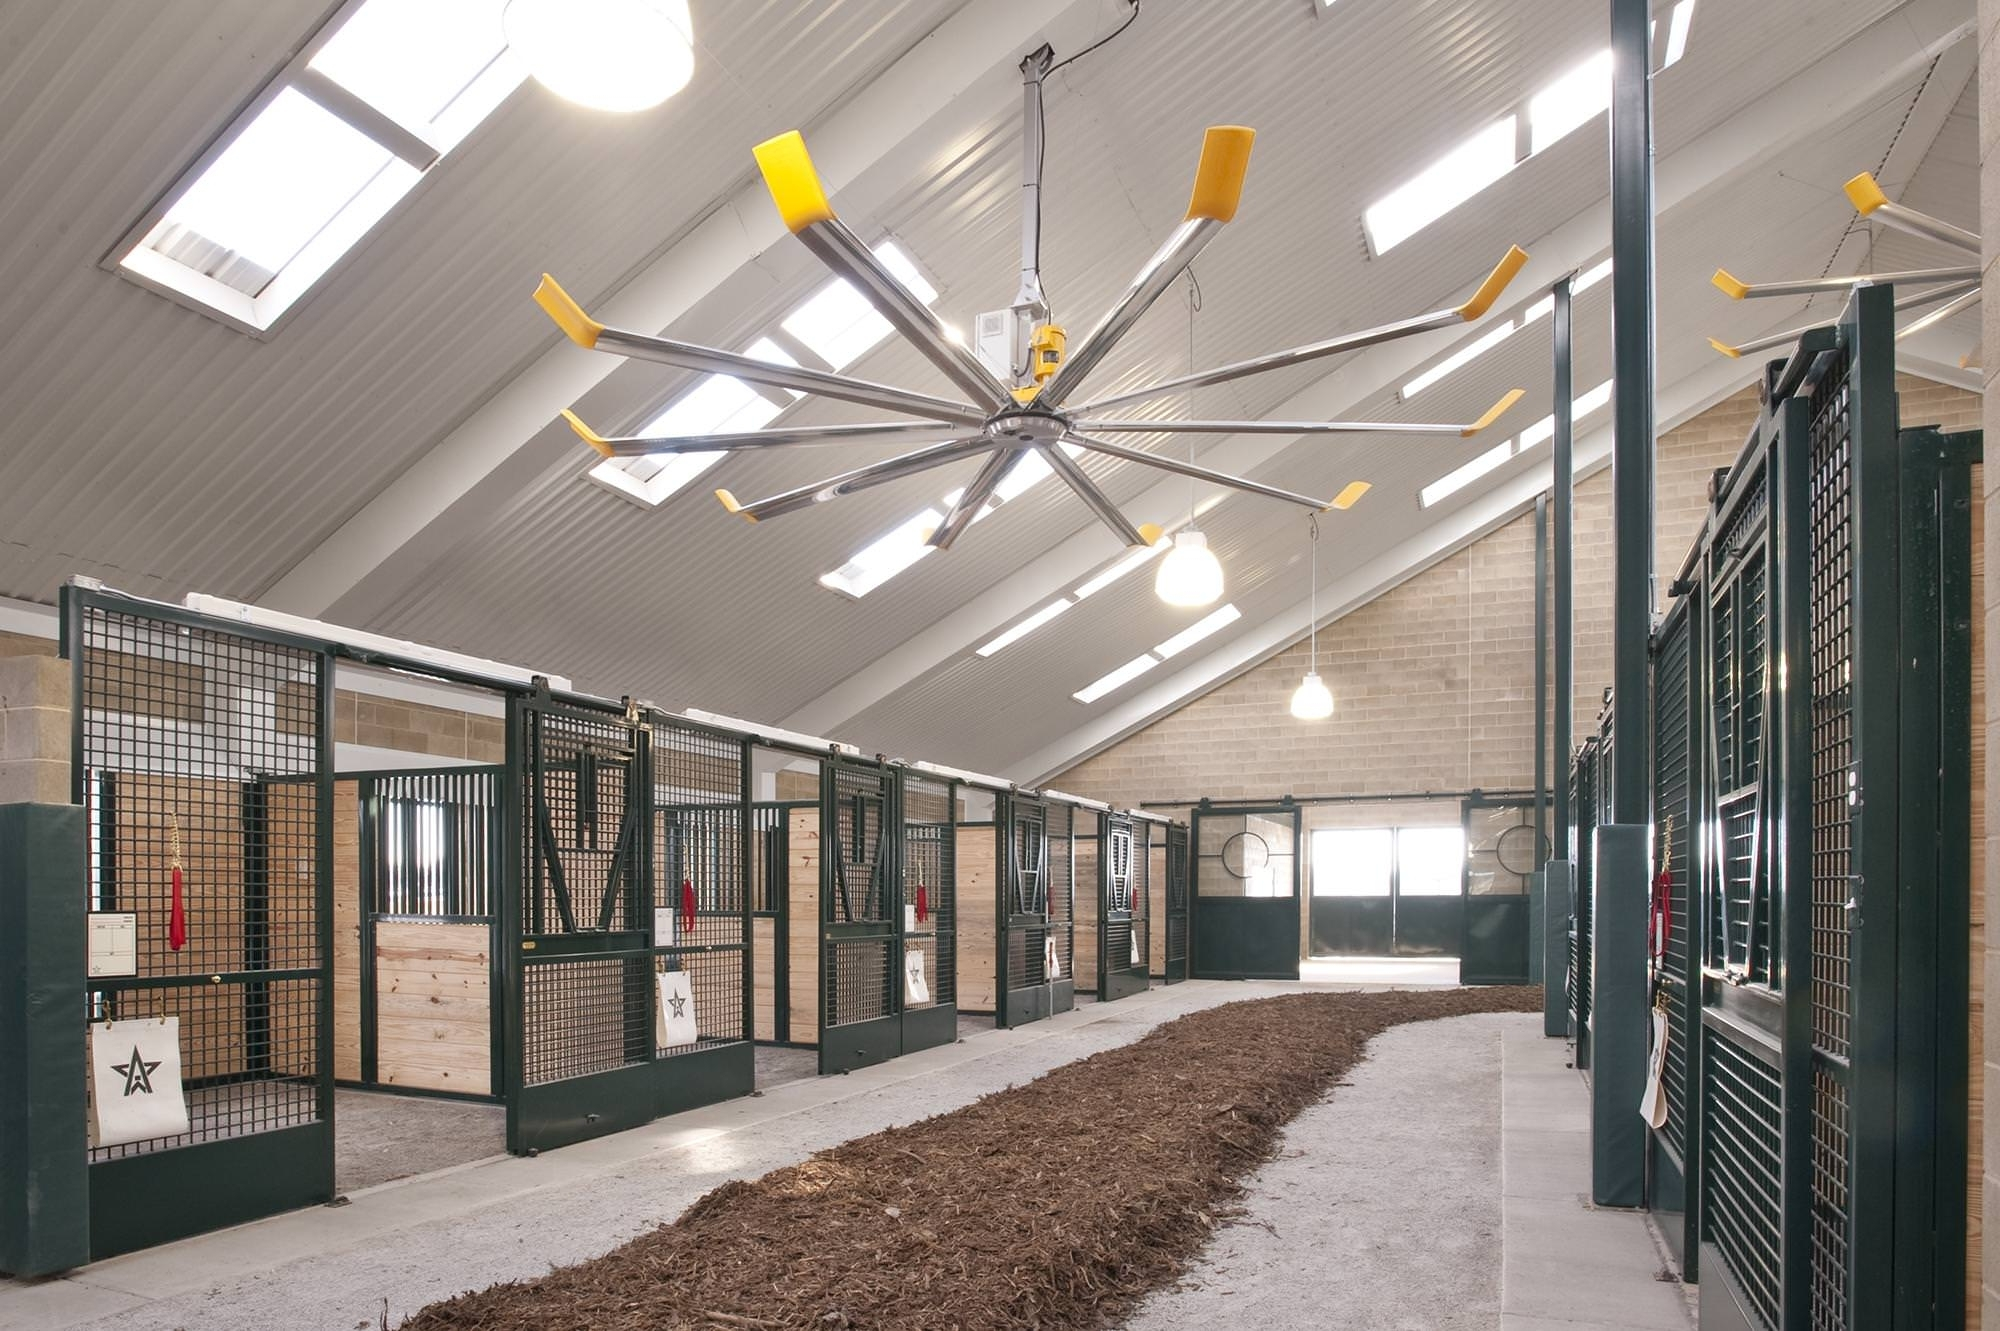 Current Outdoor Ceiling Fans For Barns Inside Large Ceiling Fans For Stables, Riding Arenas & Horse Stables From (View 10 of 20)